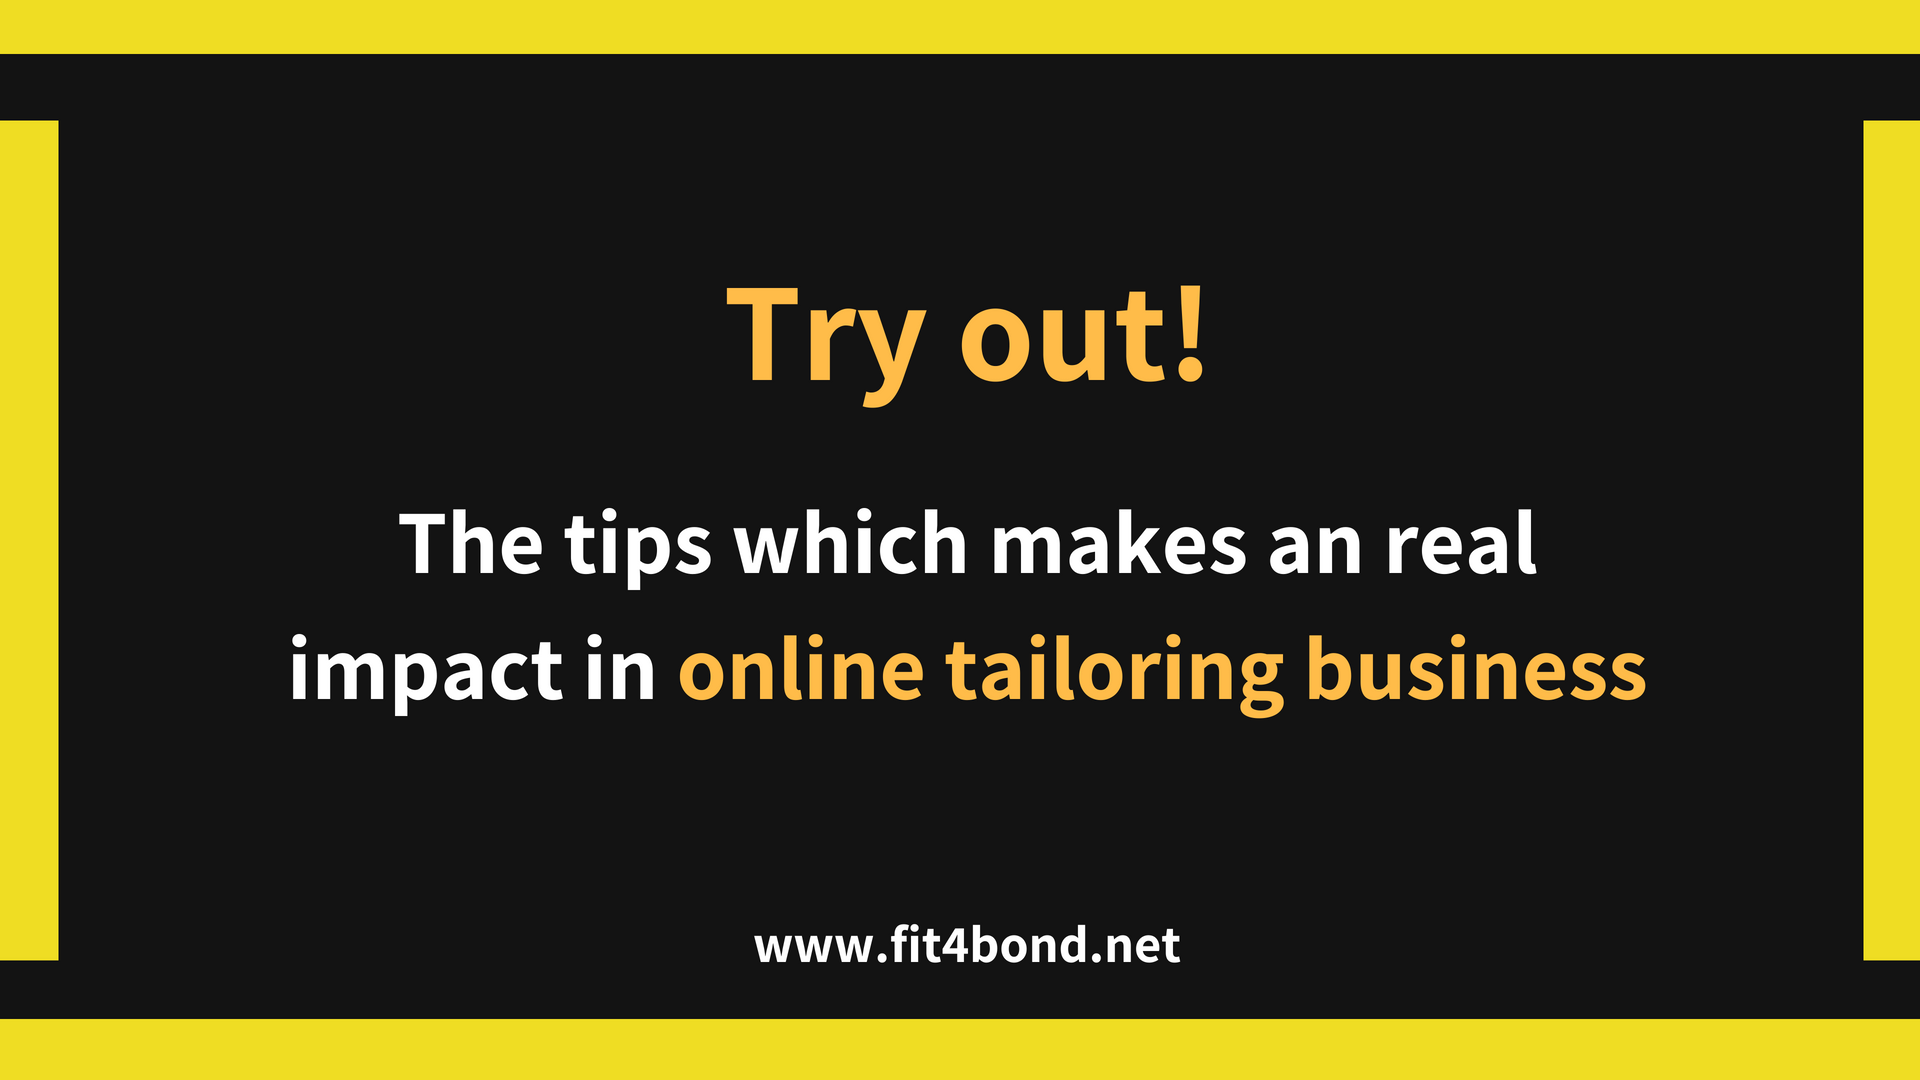 5 simple tips to grow online tailoring business faster